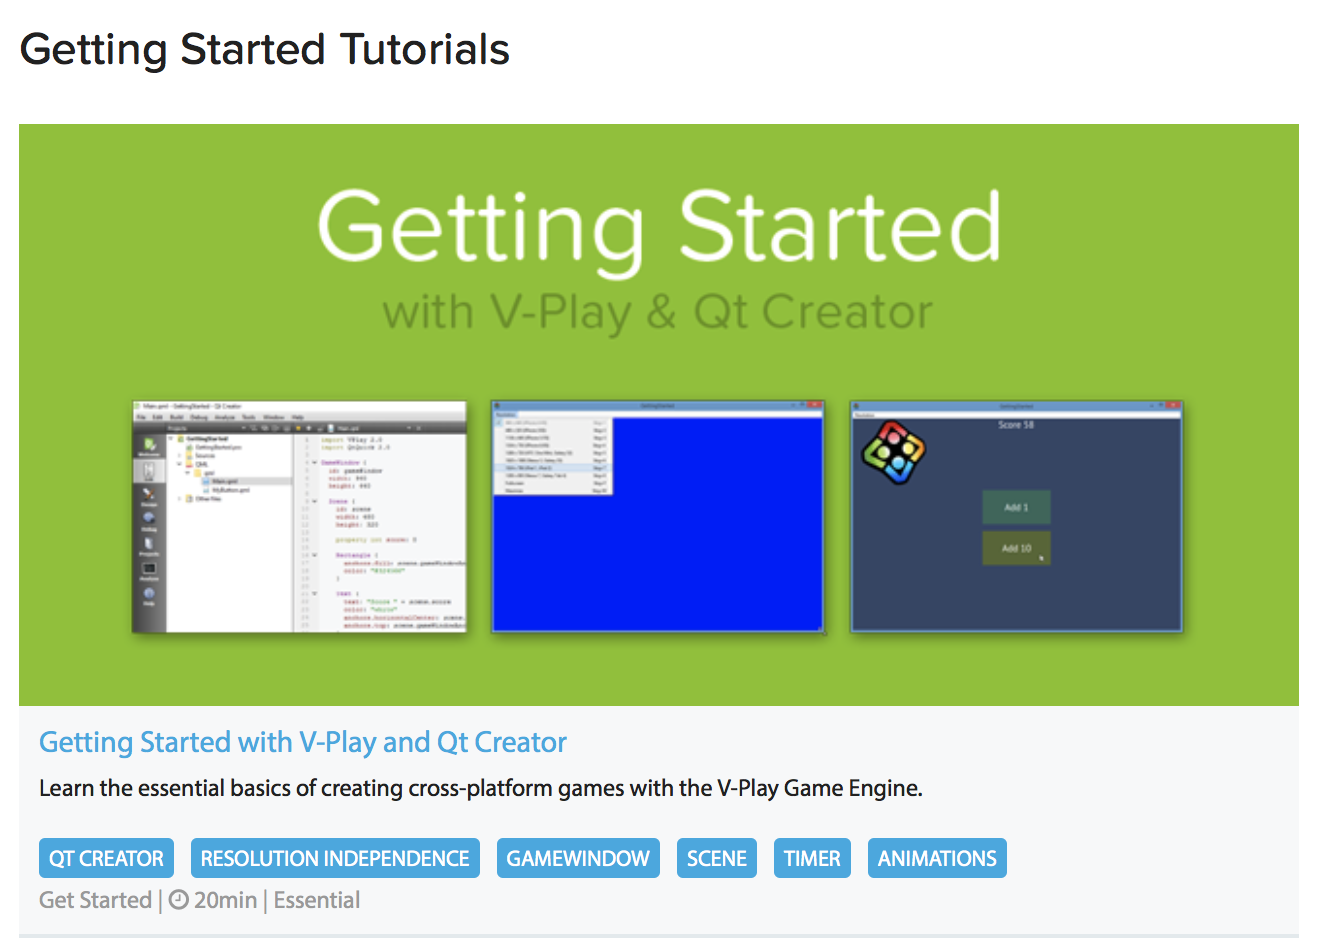 How should I start learning Qt? Are there any good books, tutorials